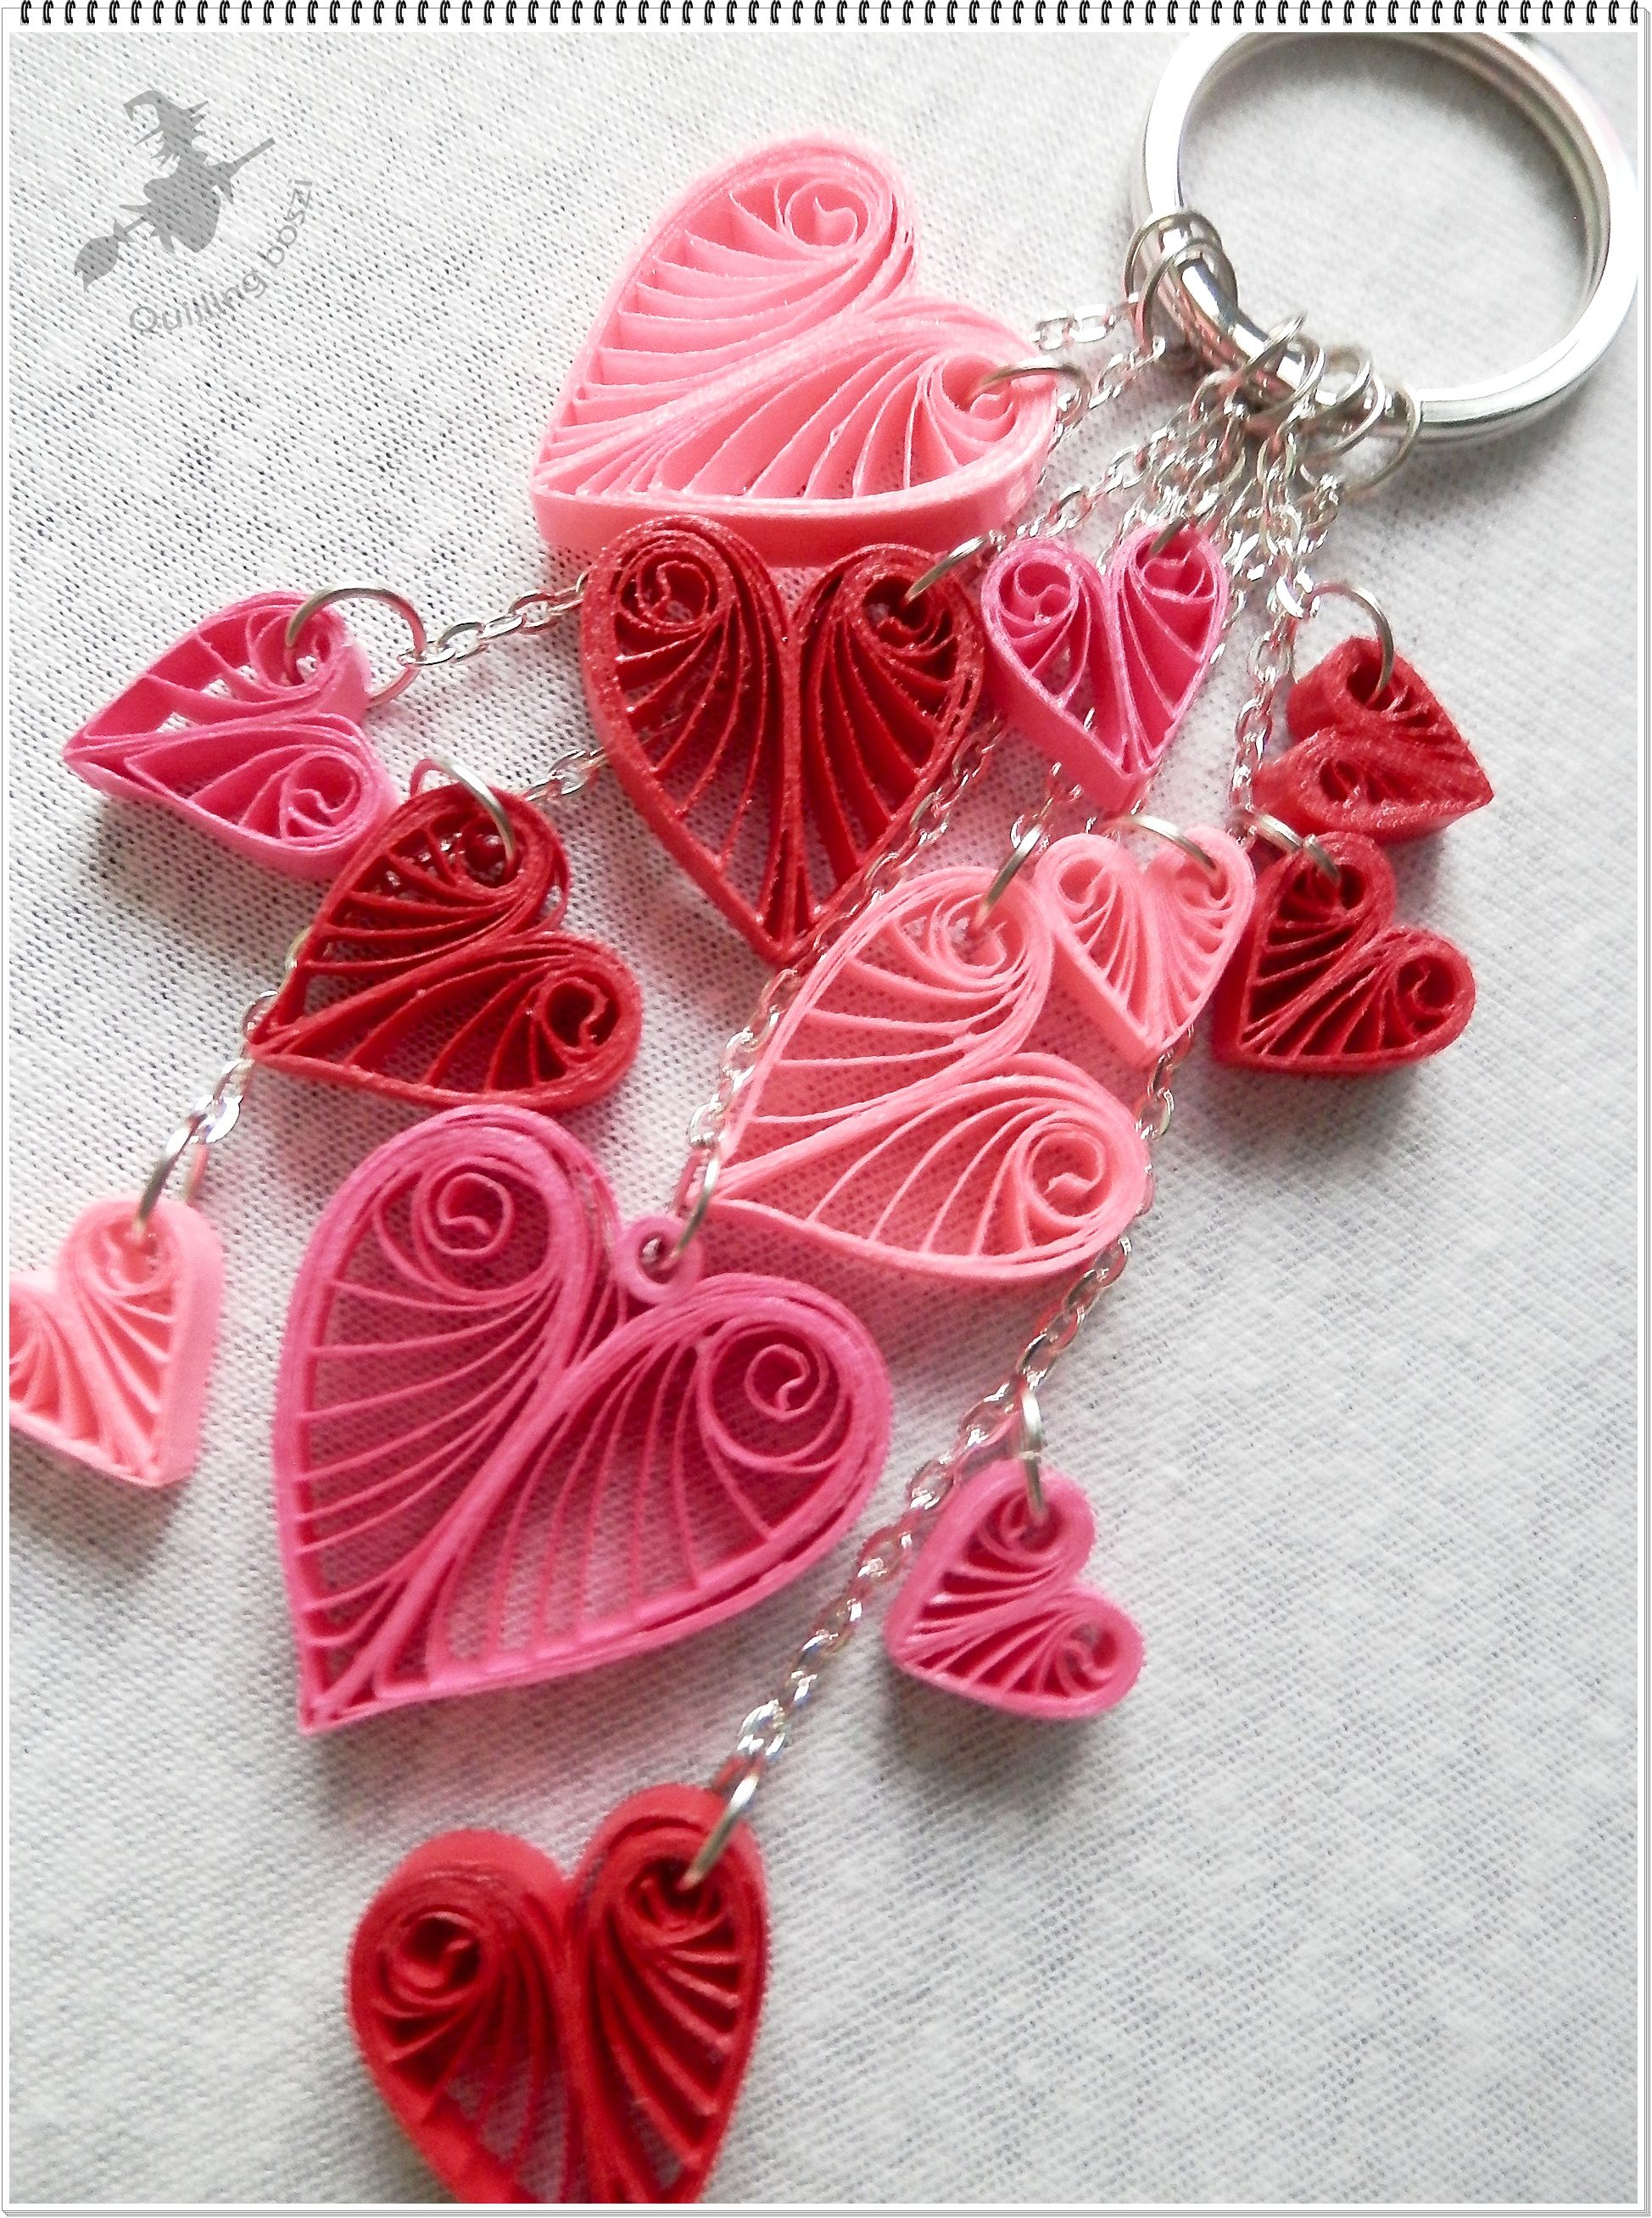 Táskadísz. | Quilling Edit Percze | Pinterest | Quilling, Key chains ...